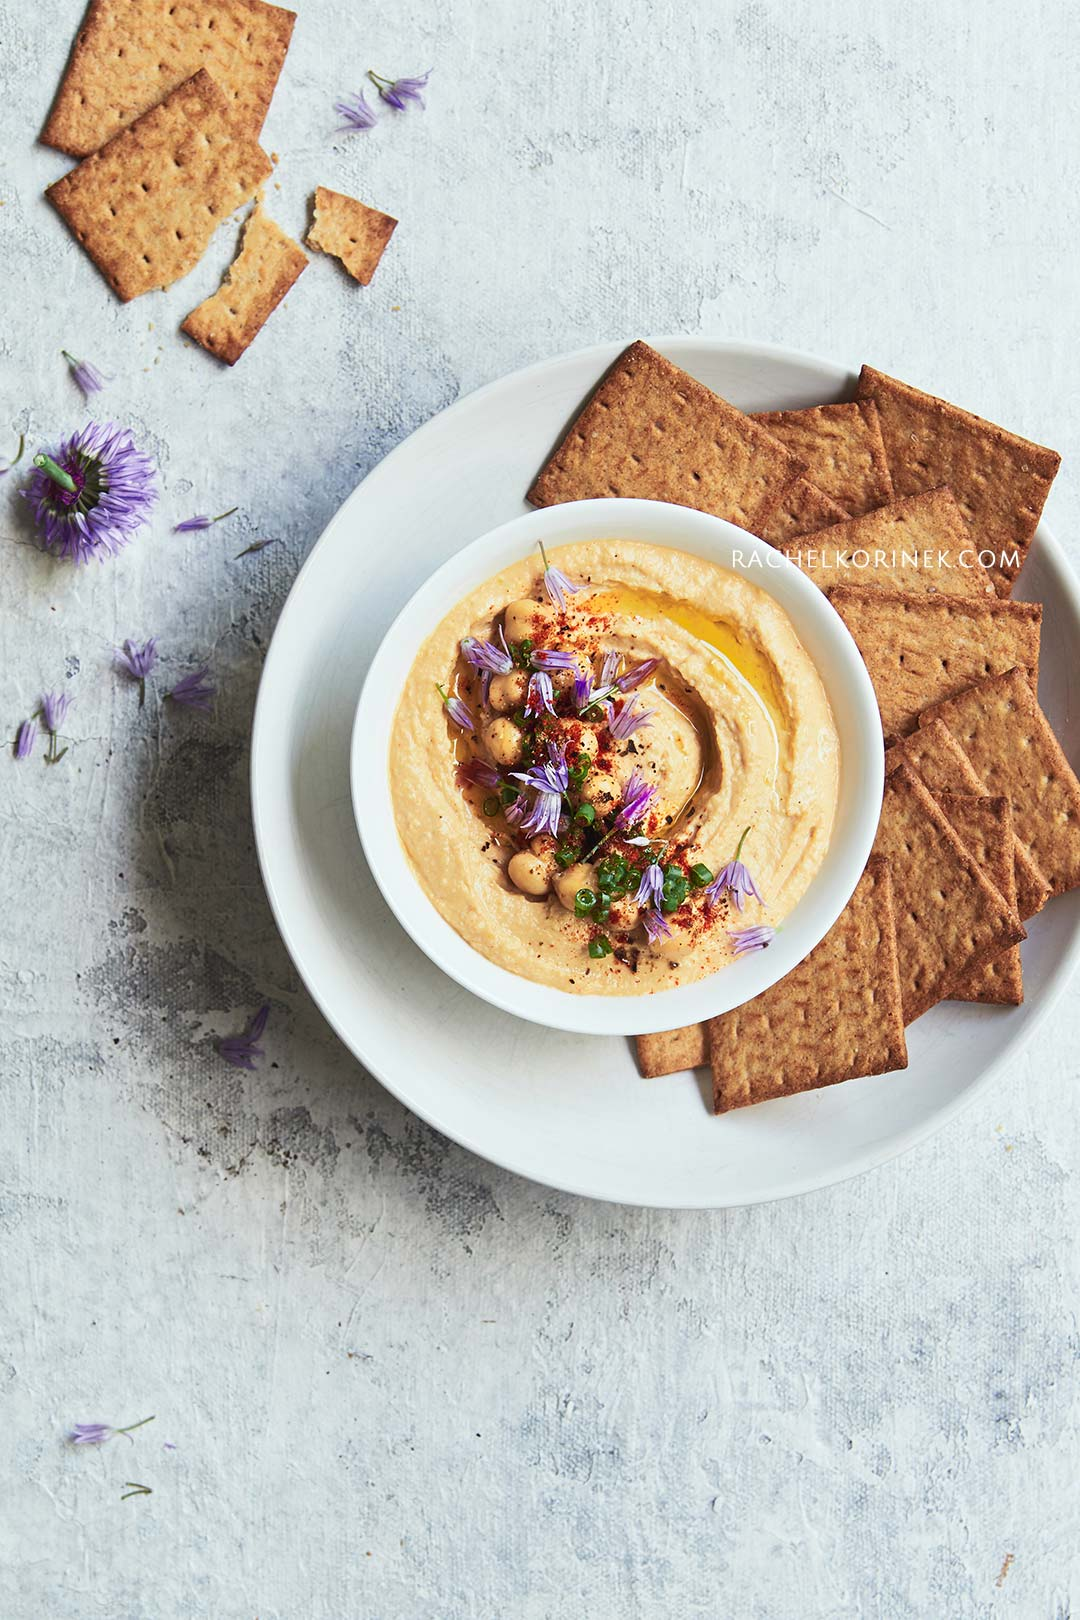 Rachel Korinek Food Photographer   Hummus With Chive Flowers  Click to check out my latest food photography projects.  #twolovesstudio #beautifulcuisine #foodbloggerpro #foodphotography #learnfoodphotography #foodblogger #learnphotography #foodstyling #lightingtips #naturallight #foodphotographer